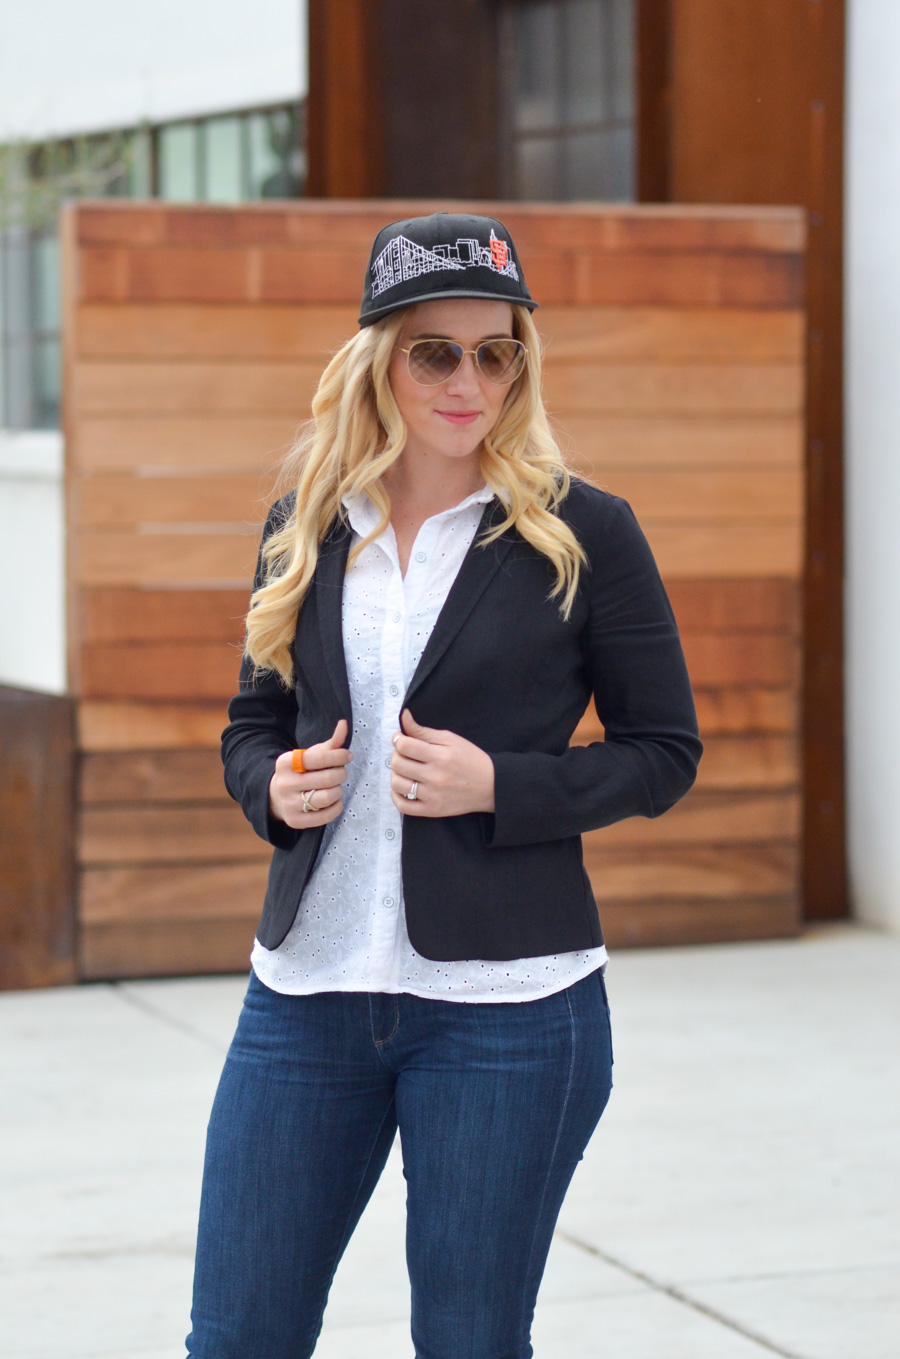 Chic Baseball Game Outfit for Women - SF Giants Skyline Hat